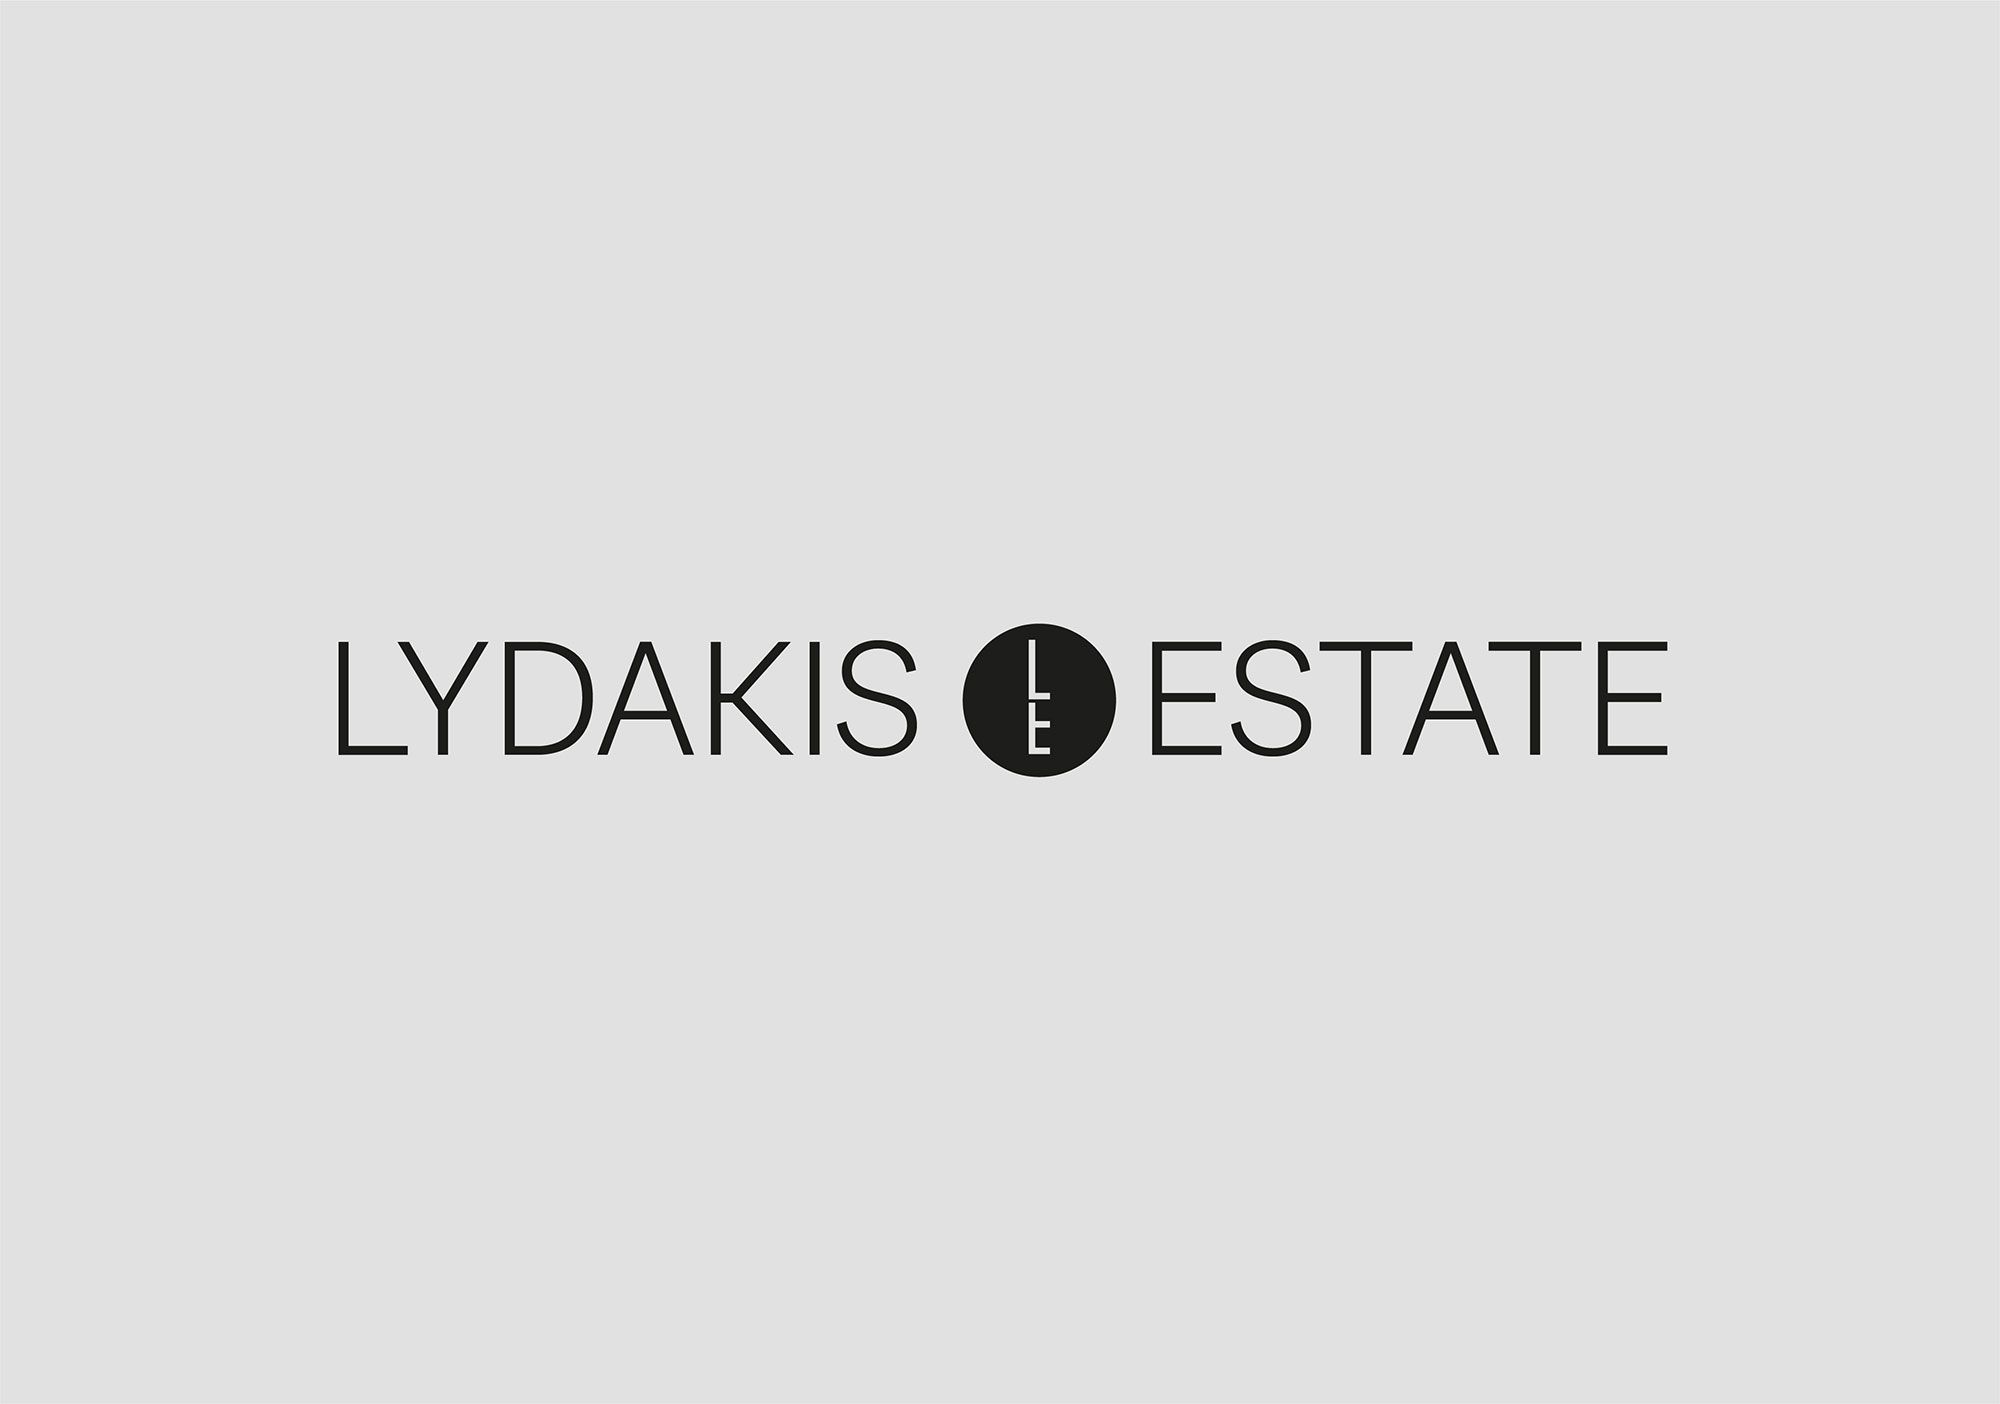 Lydakis Estate Construction and Real Estate Company in Crete, Greece and London UK